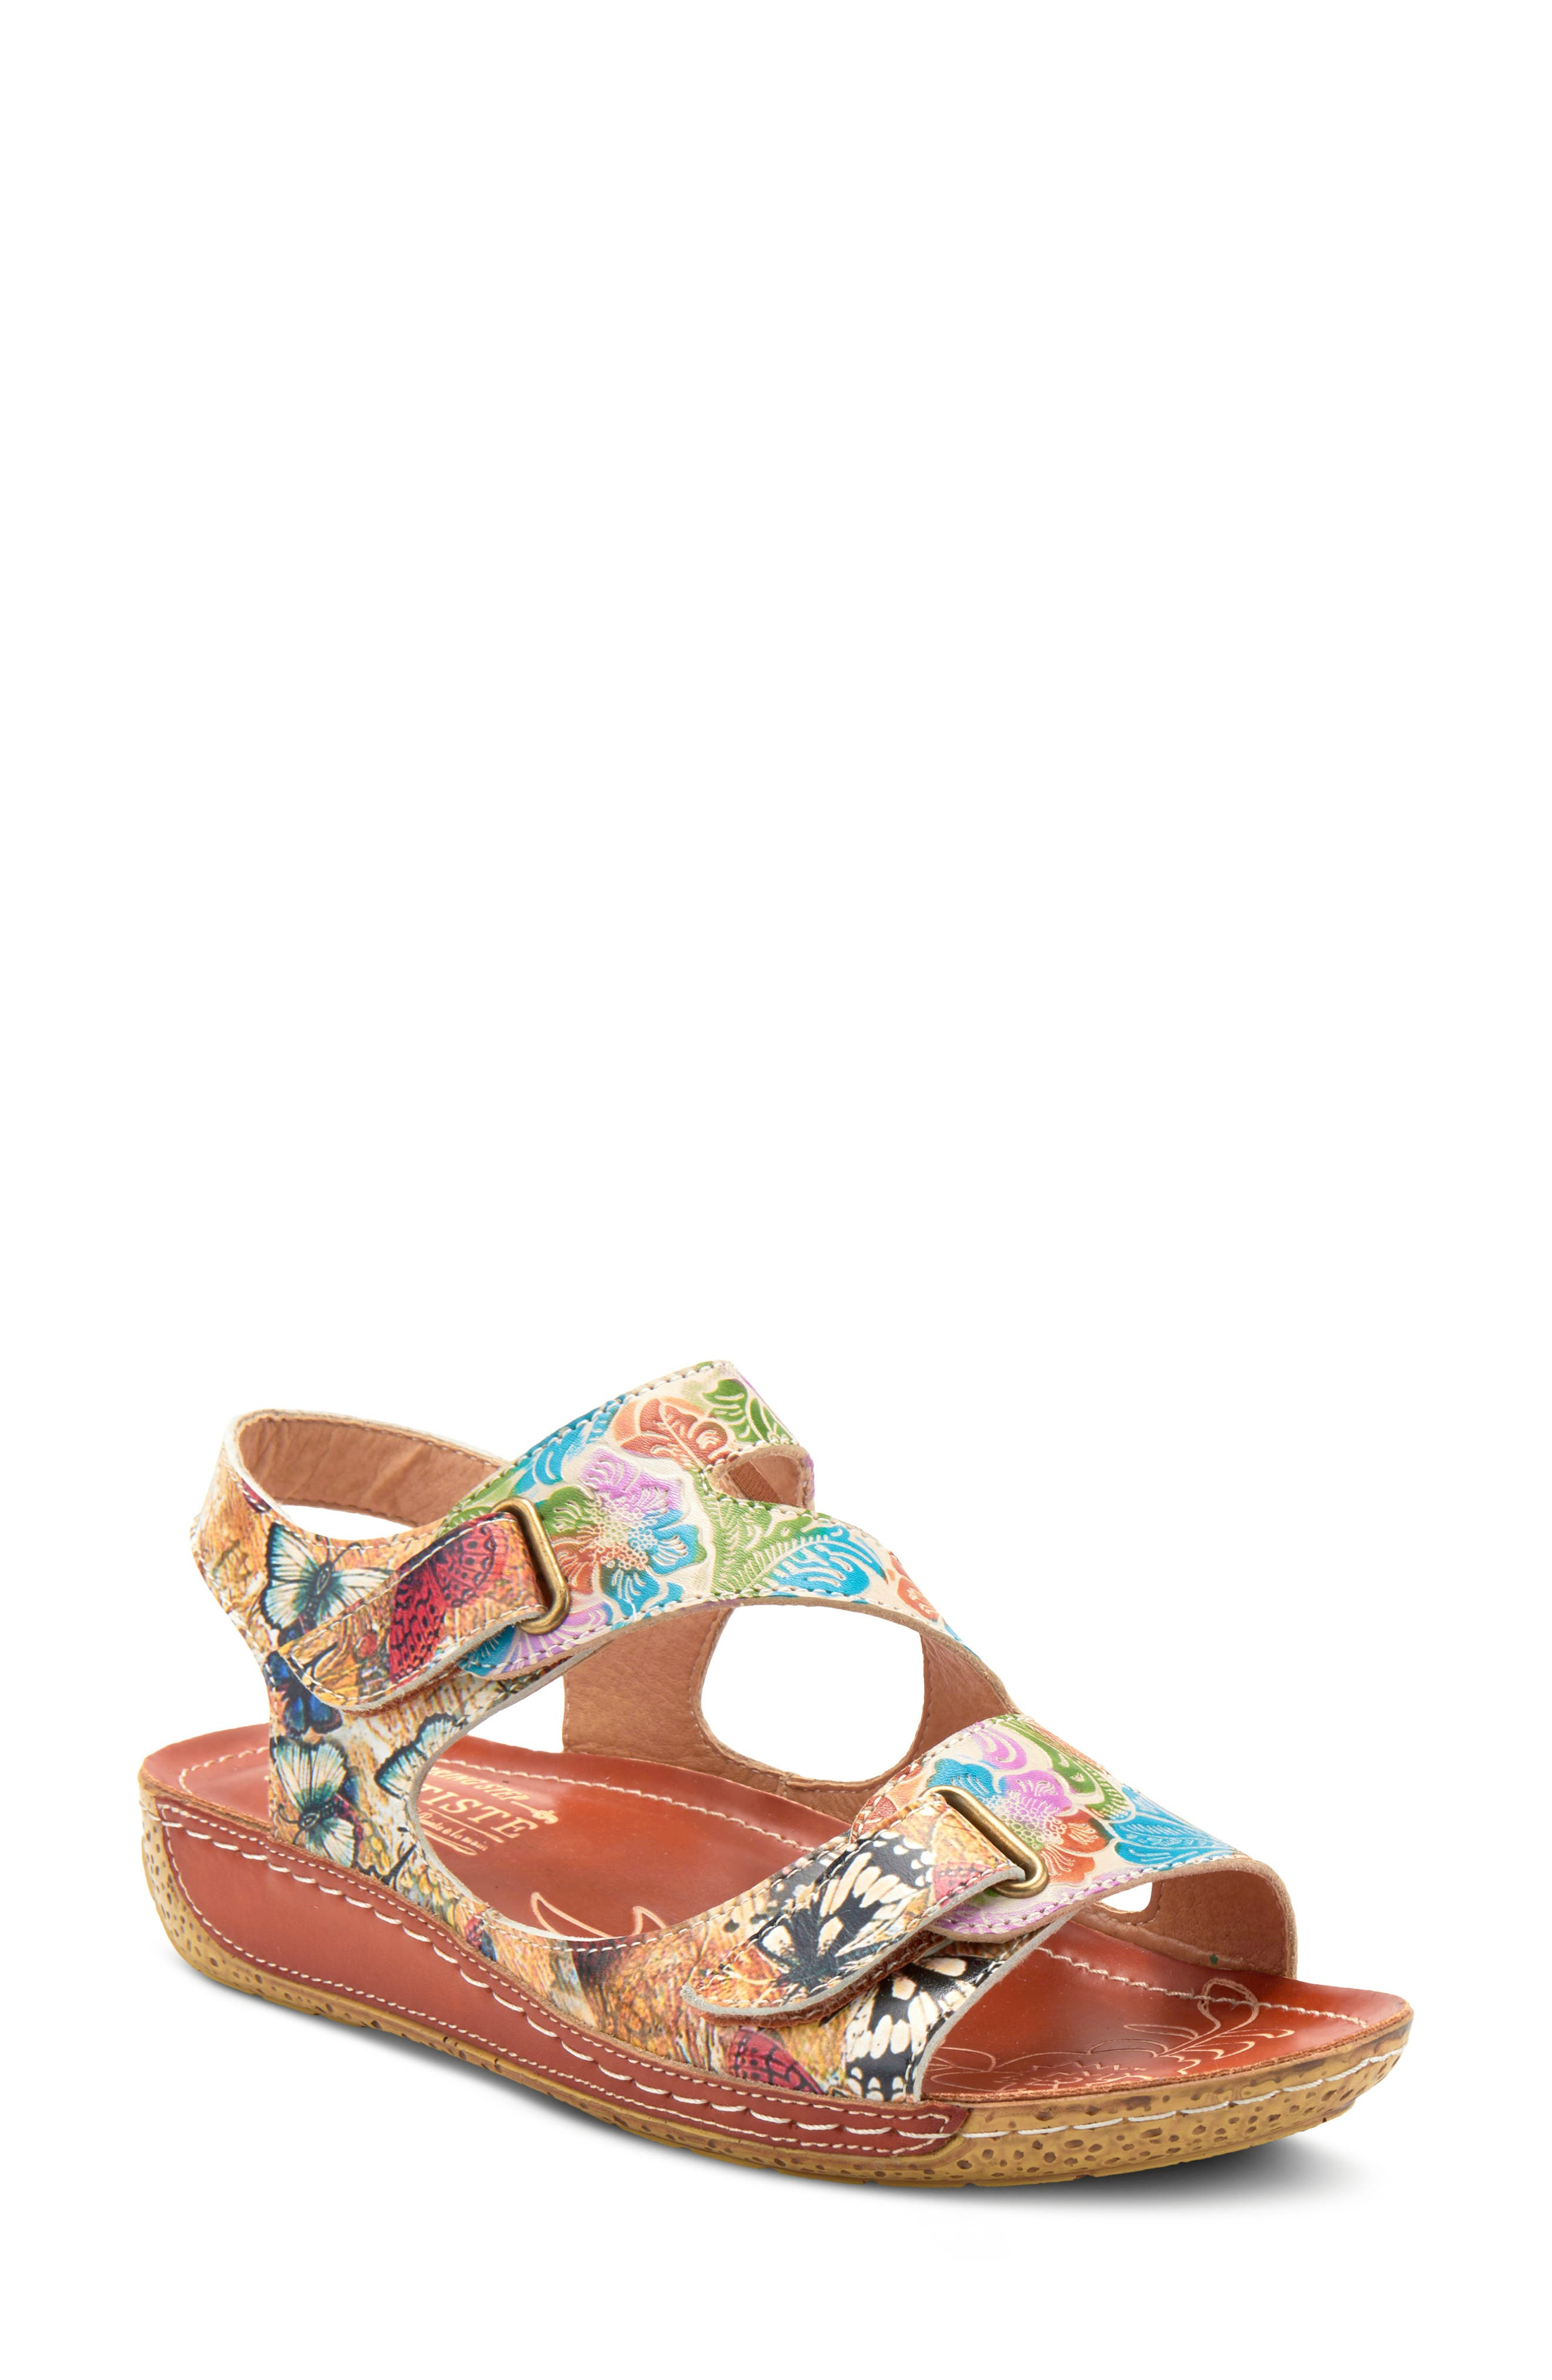 Hand-painted details and natural tanned leather call attention to a boldly patterned sandal set on a low platform and wedge. Style Name:L\\\'Artiste Symphony Sandal (Women). Style Number: 6000069. Available in stores.